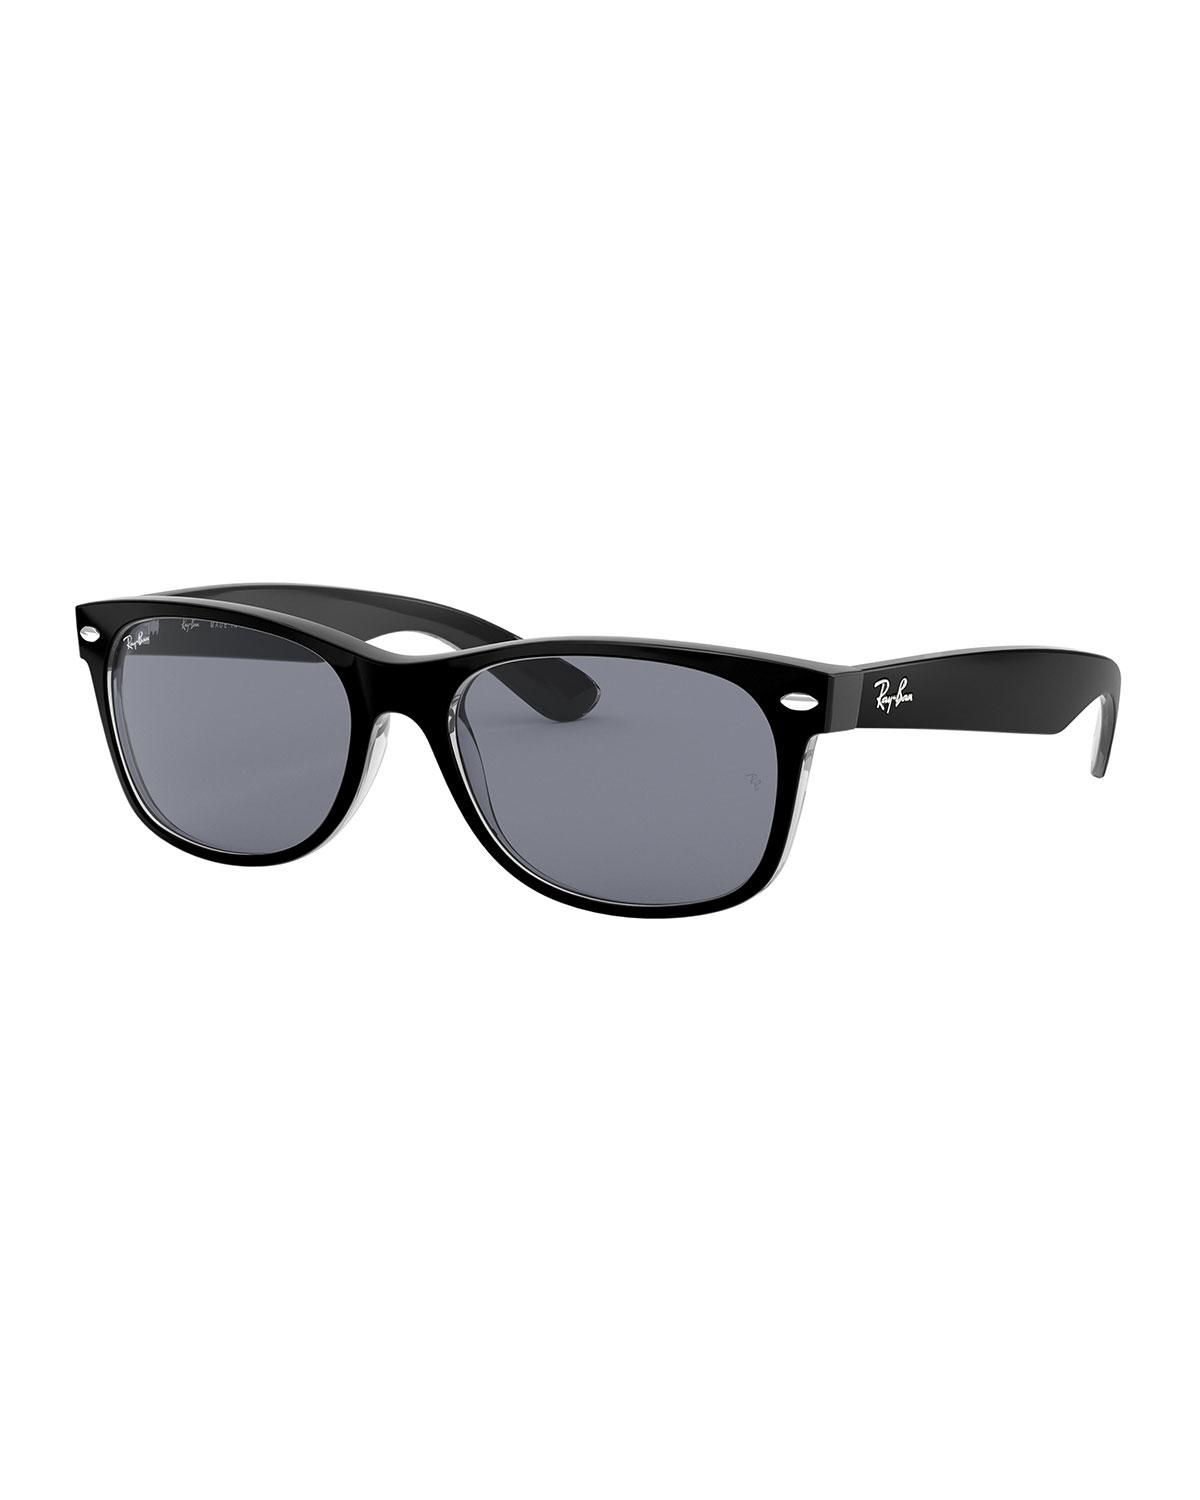 906f33867d272 Lyst - Ray-Ban Men s New Wayfarer Propionate Sunglasses in Black